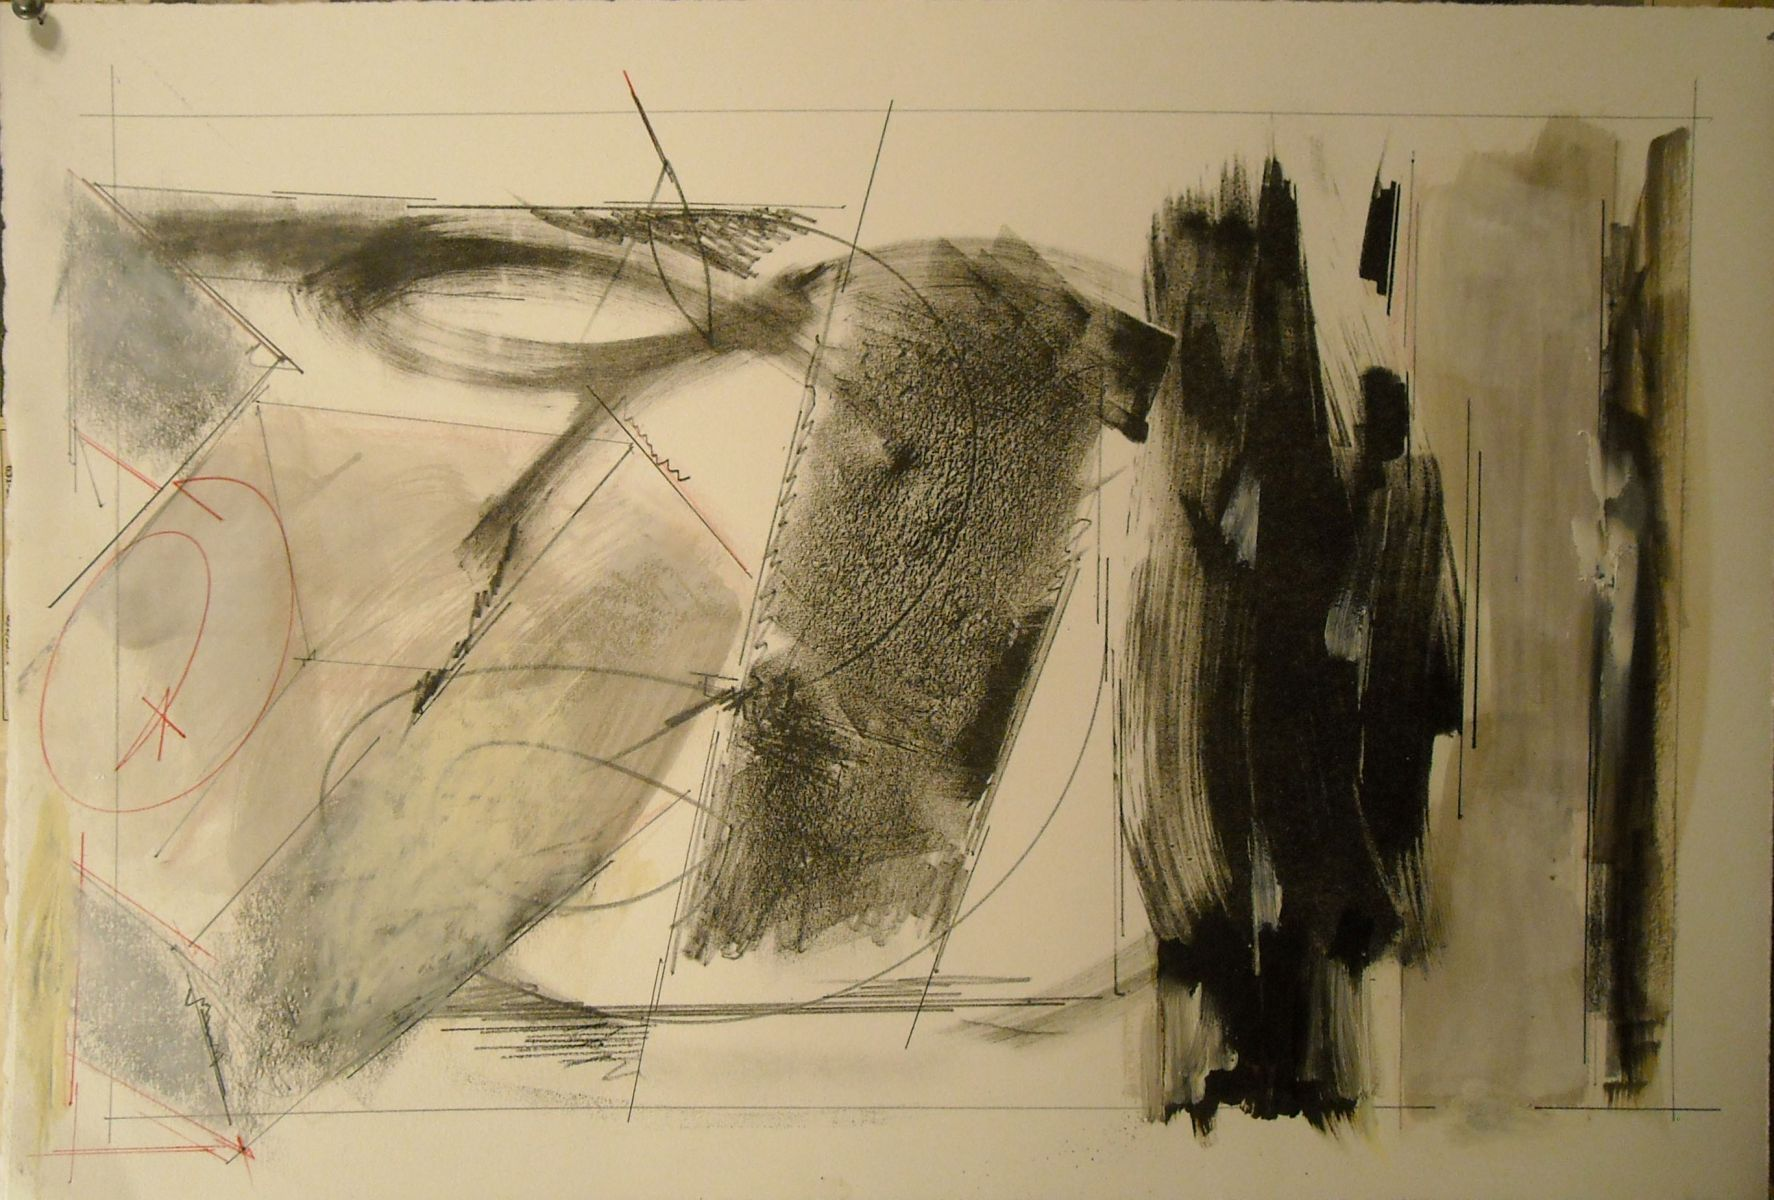 "Compostion w BOX    201315 x 22"" hand altered lithograph , ie oil, crayon etc on lithographic print"